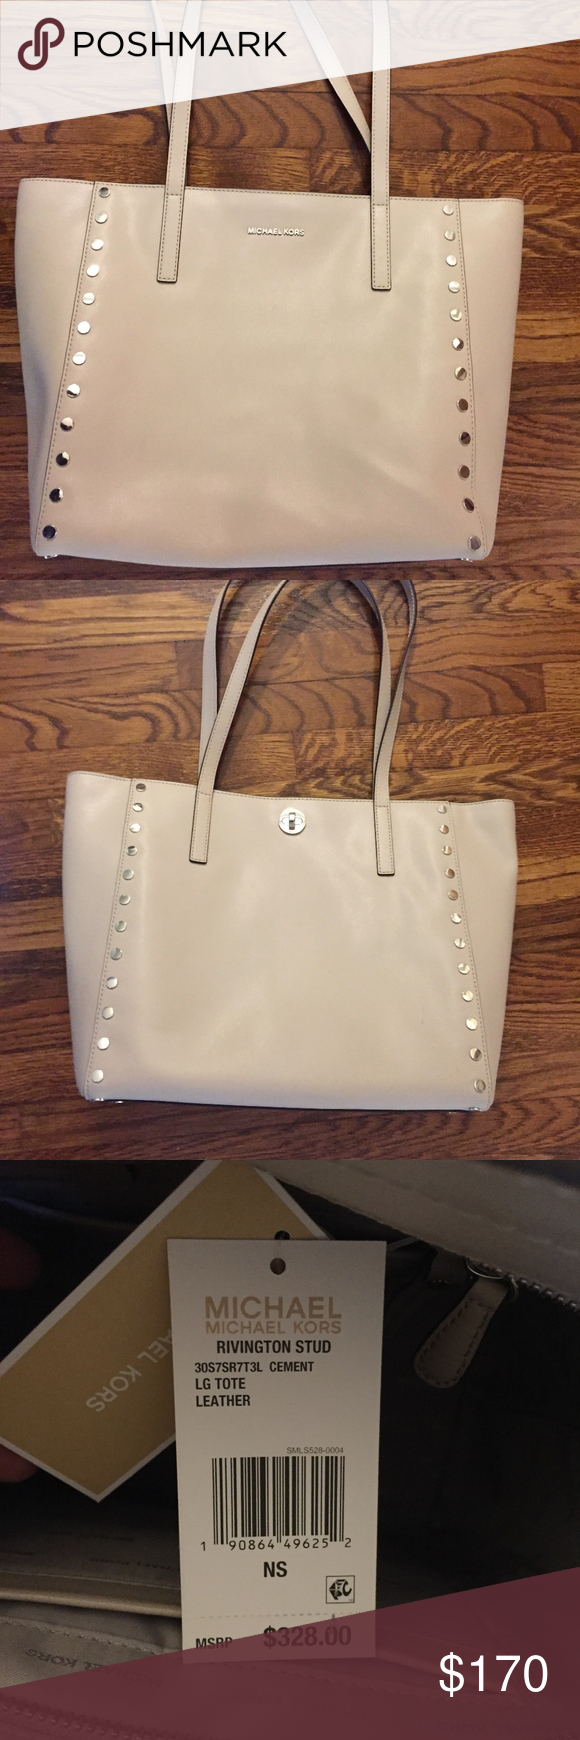 1f869fe652a0 Michael Kors Rivington Stud Large Tote Color: Cement/gray with silver tone  hardware Top zip closure Exterior pocket with turncock closure 11